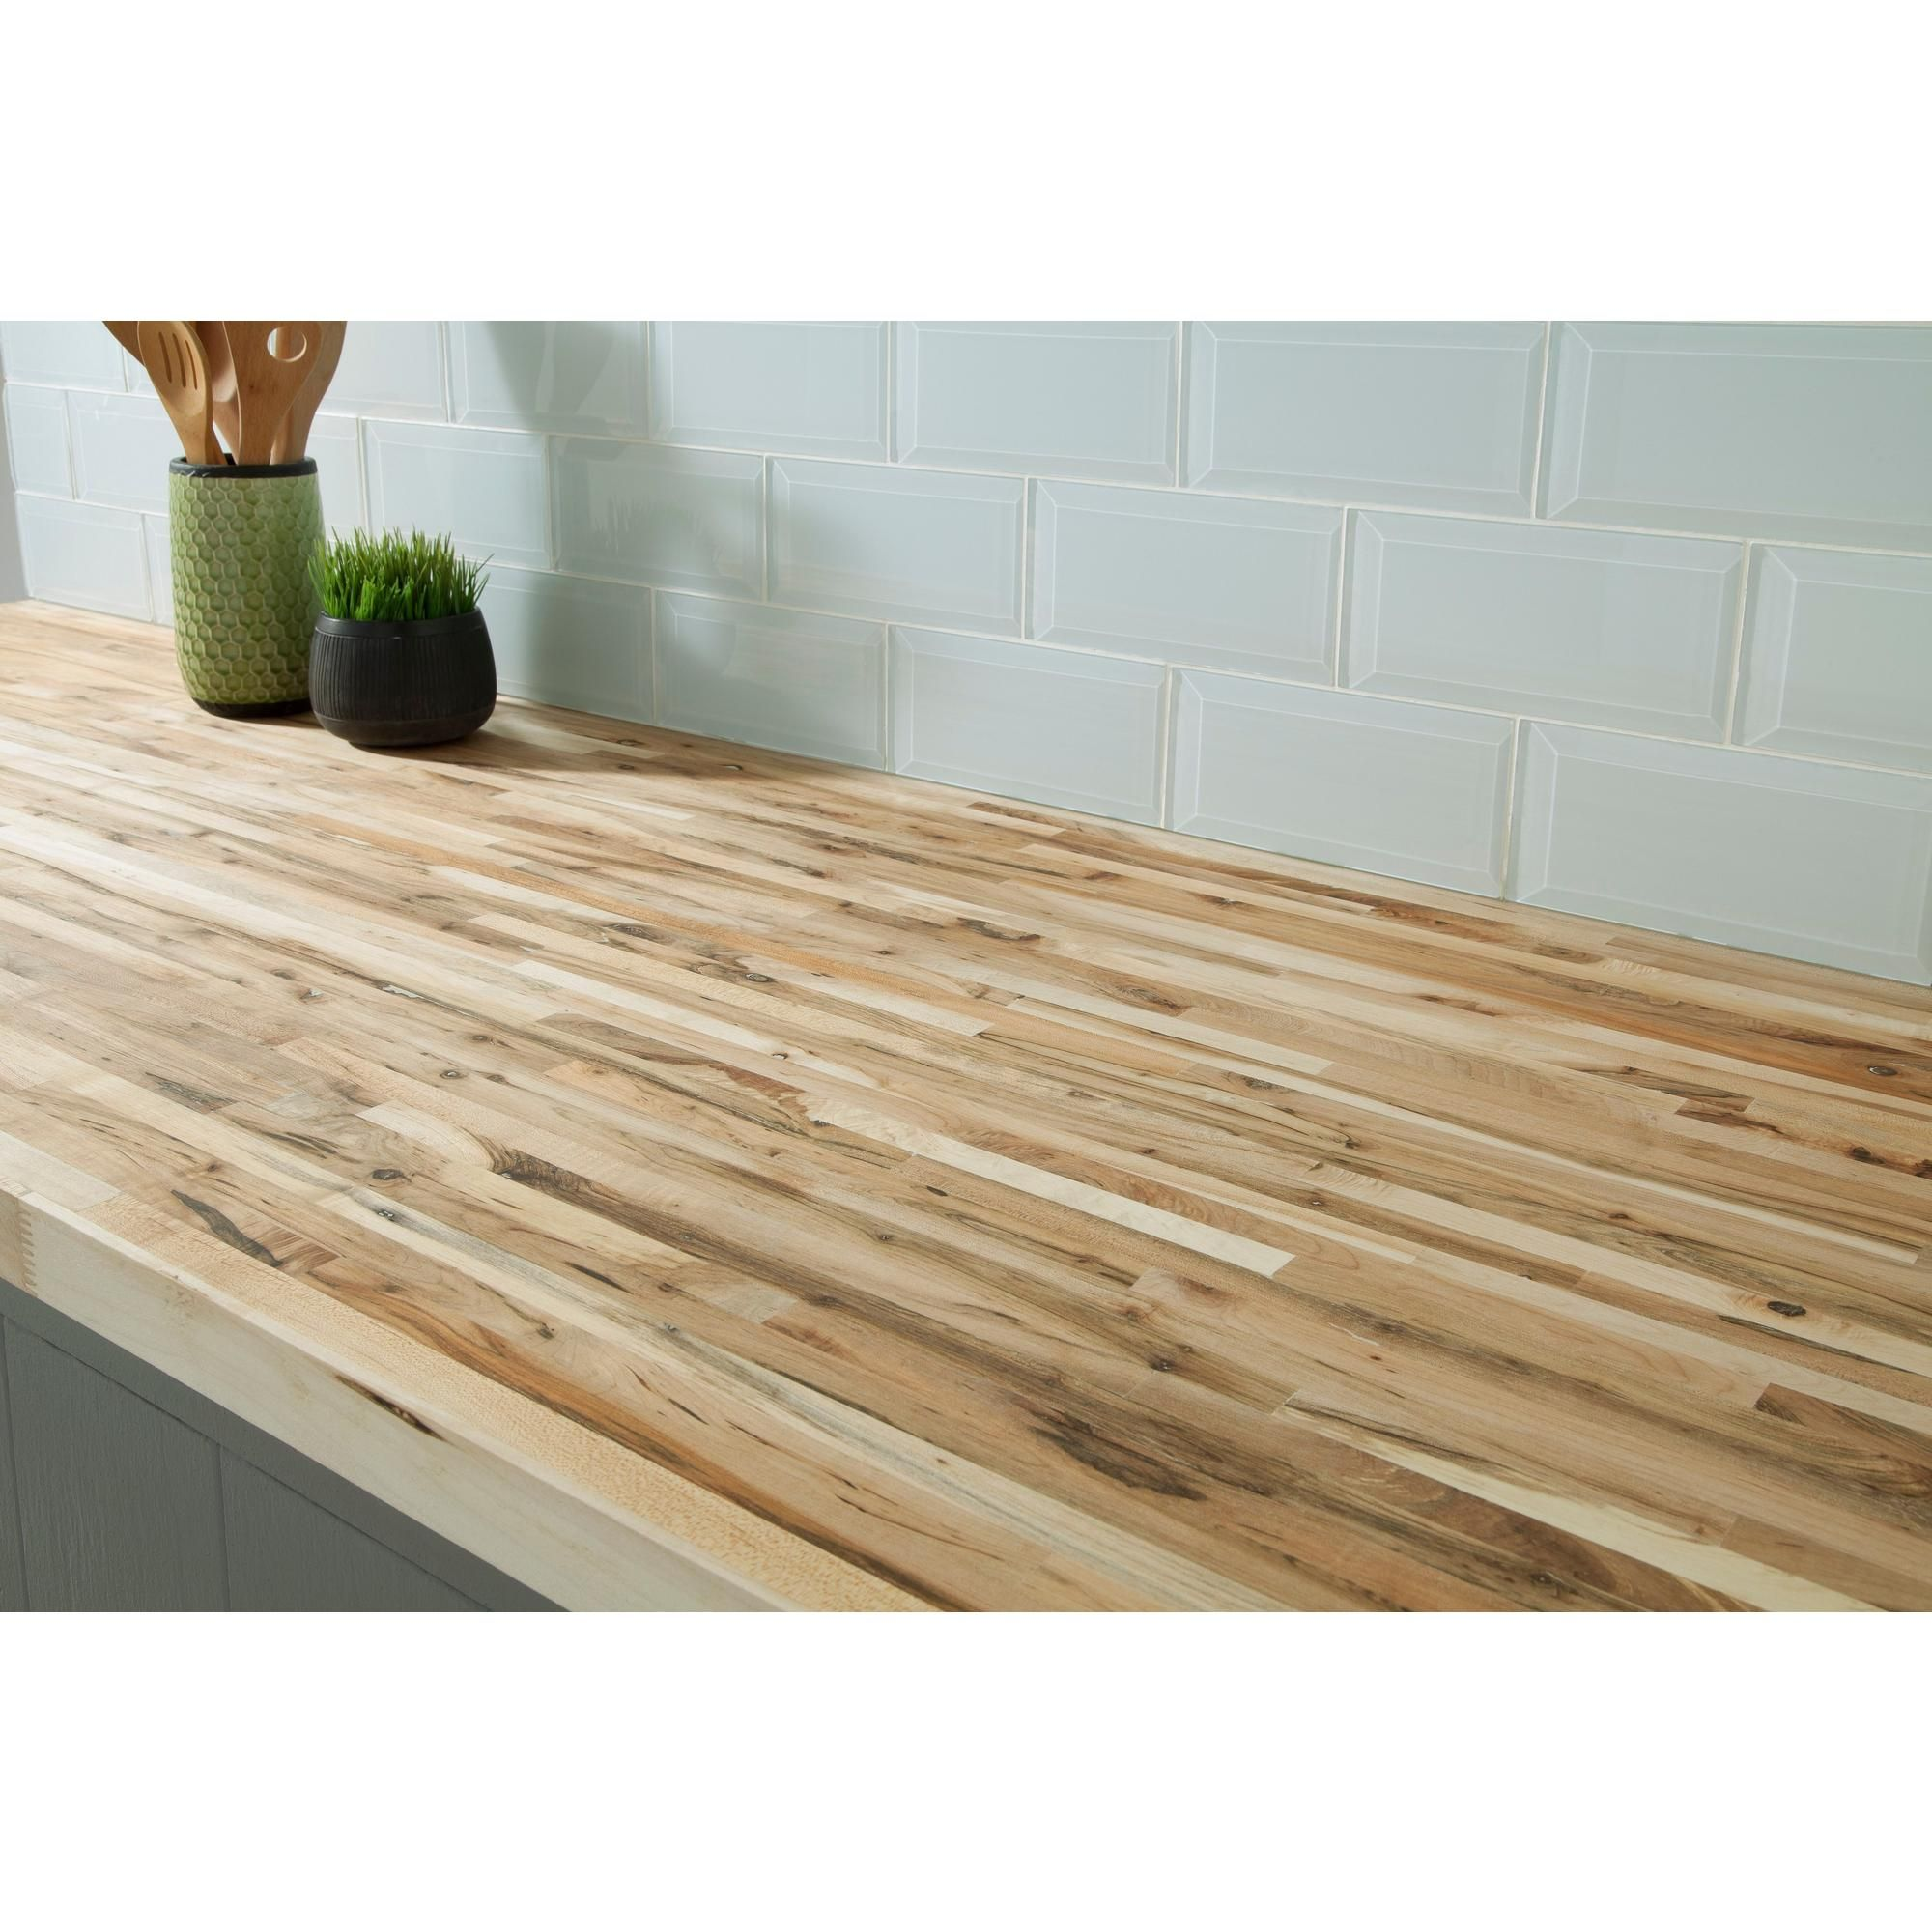 Maple Builder Grade Butcher Block